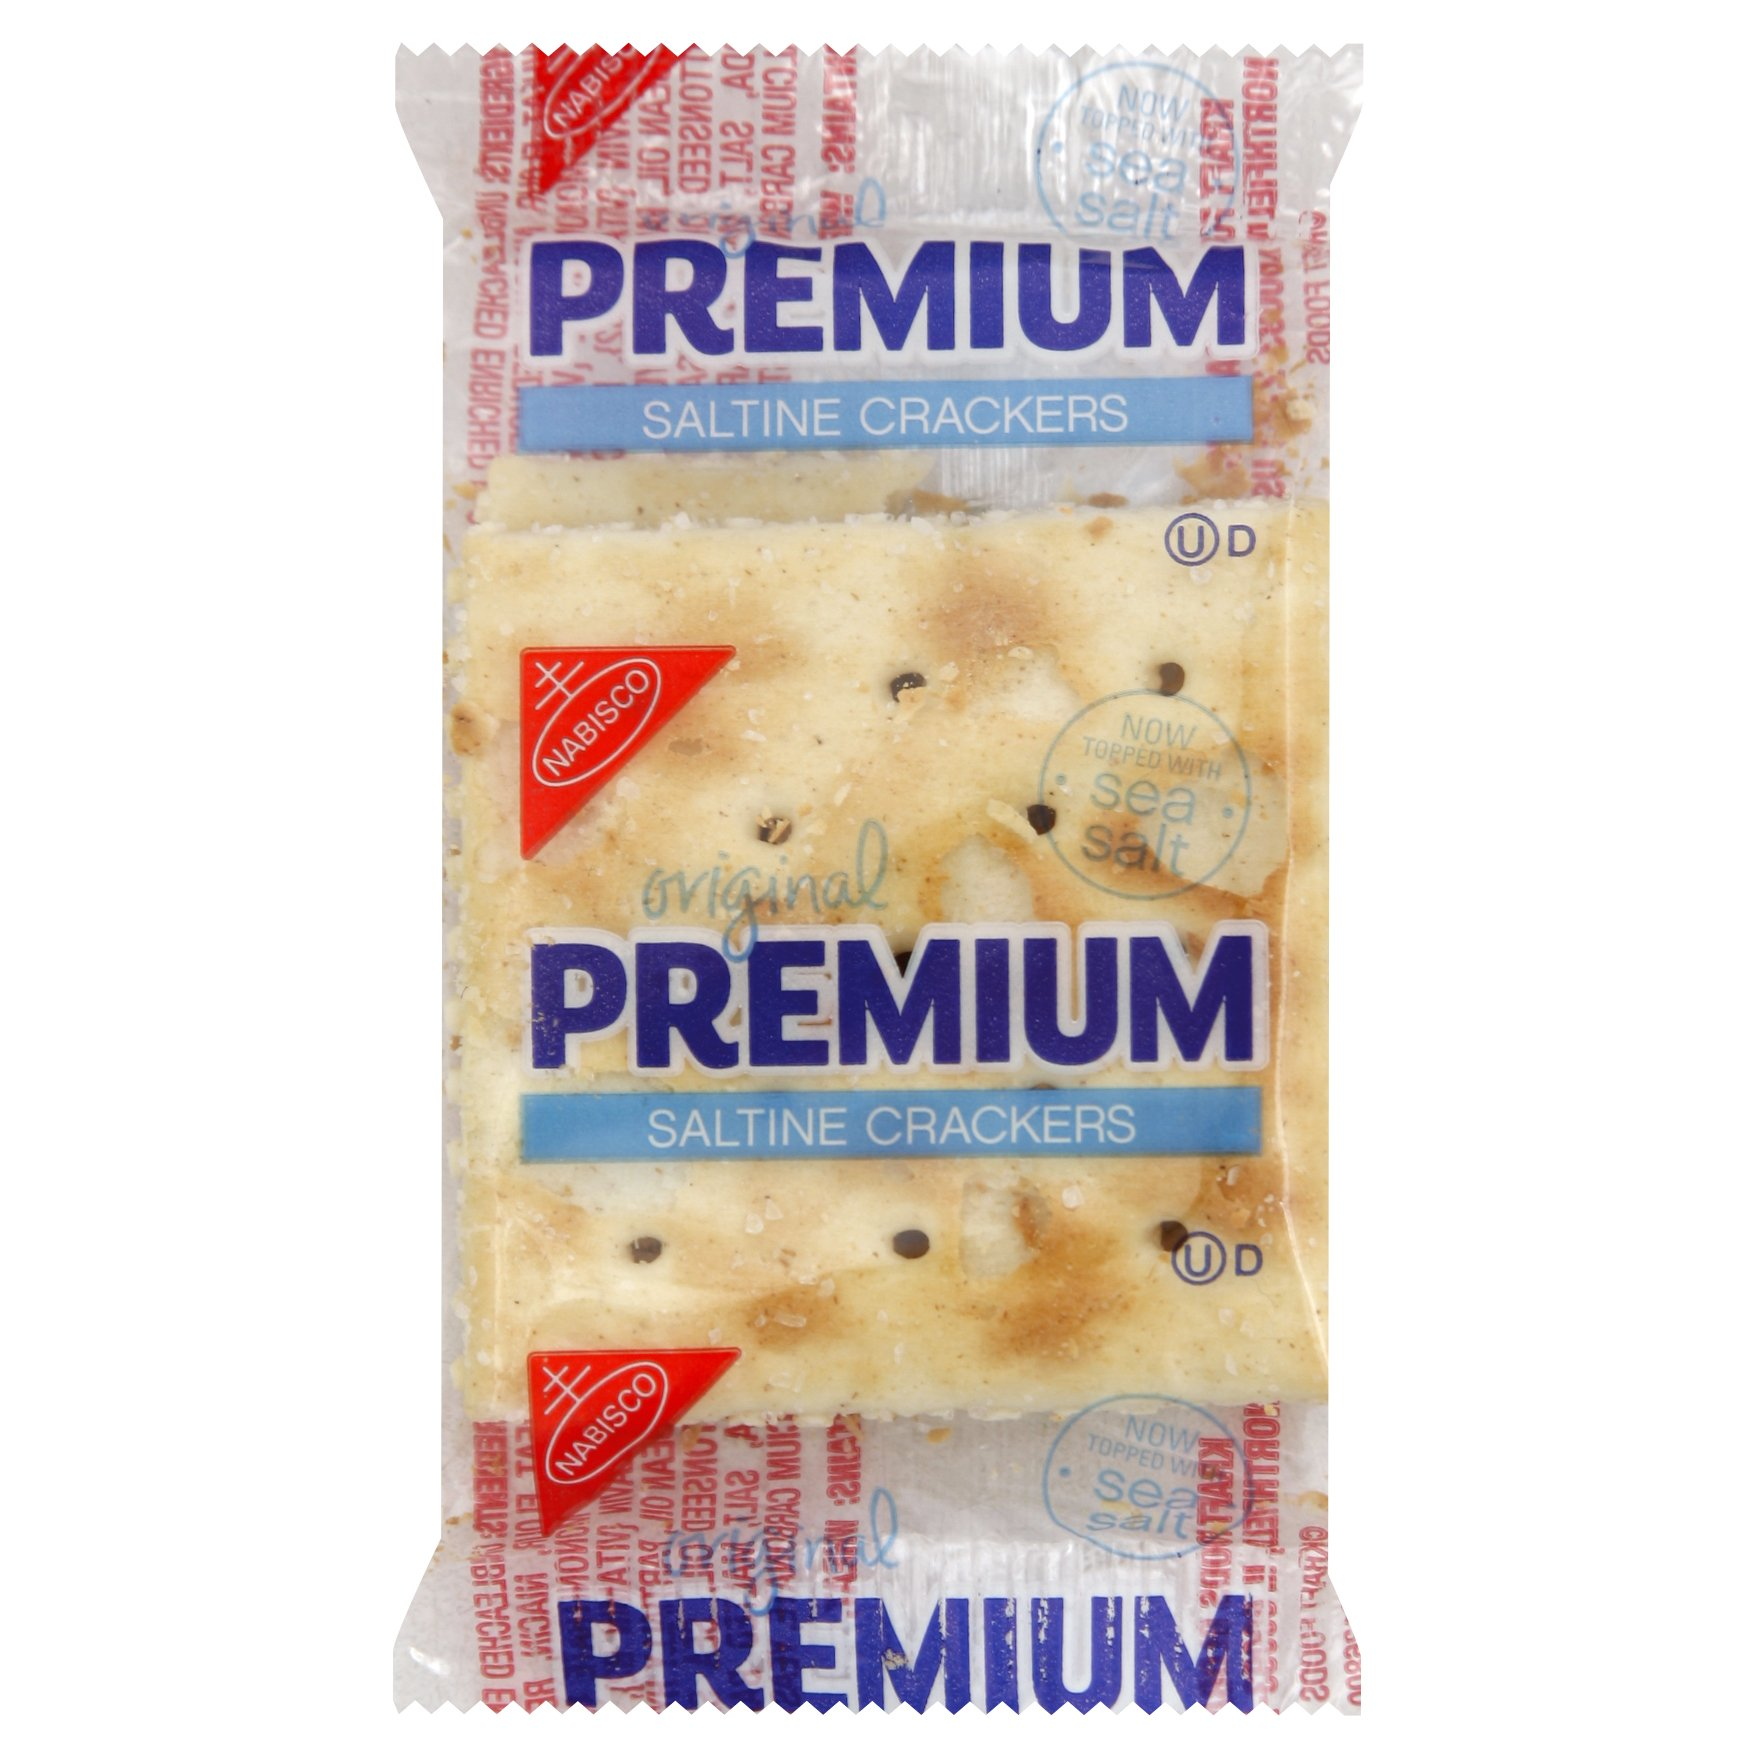 Premium Saltine Crackers, 0.2 Ounce (Pack of 500) by PREMIUM